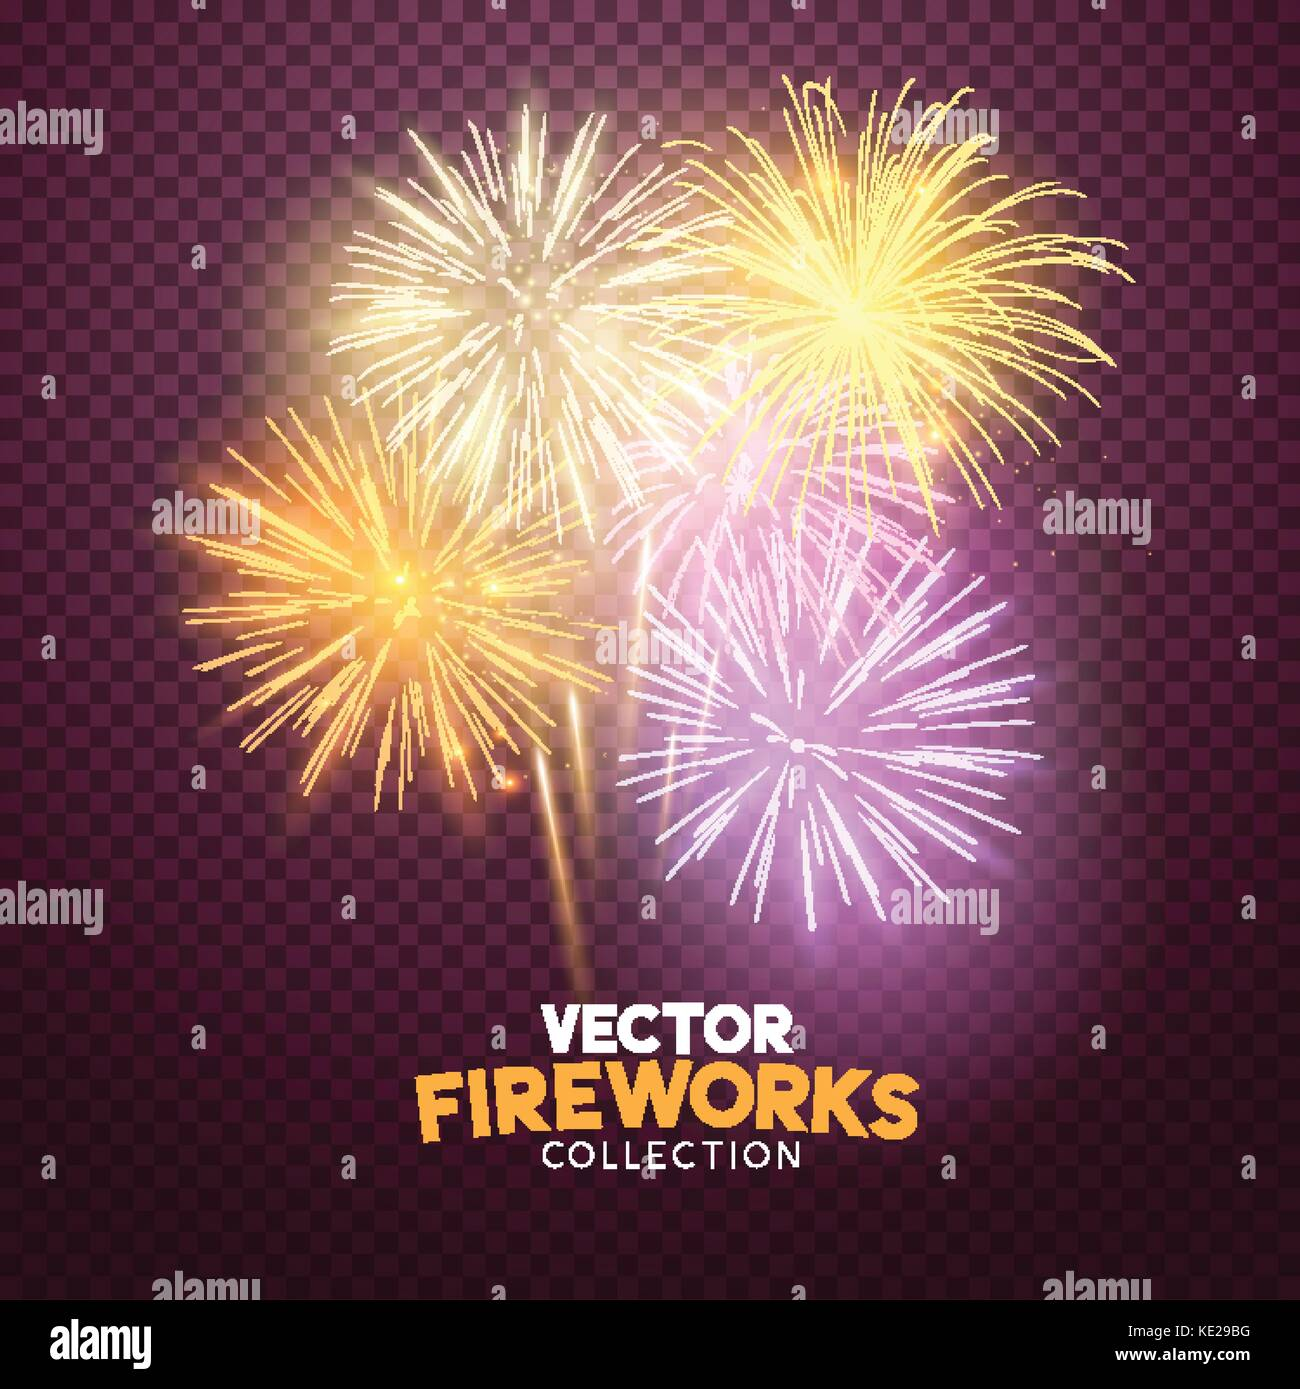 A set of Isolated bursting vector fireworks in pink and gold, holiday celebration symbols! - Stock Image